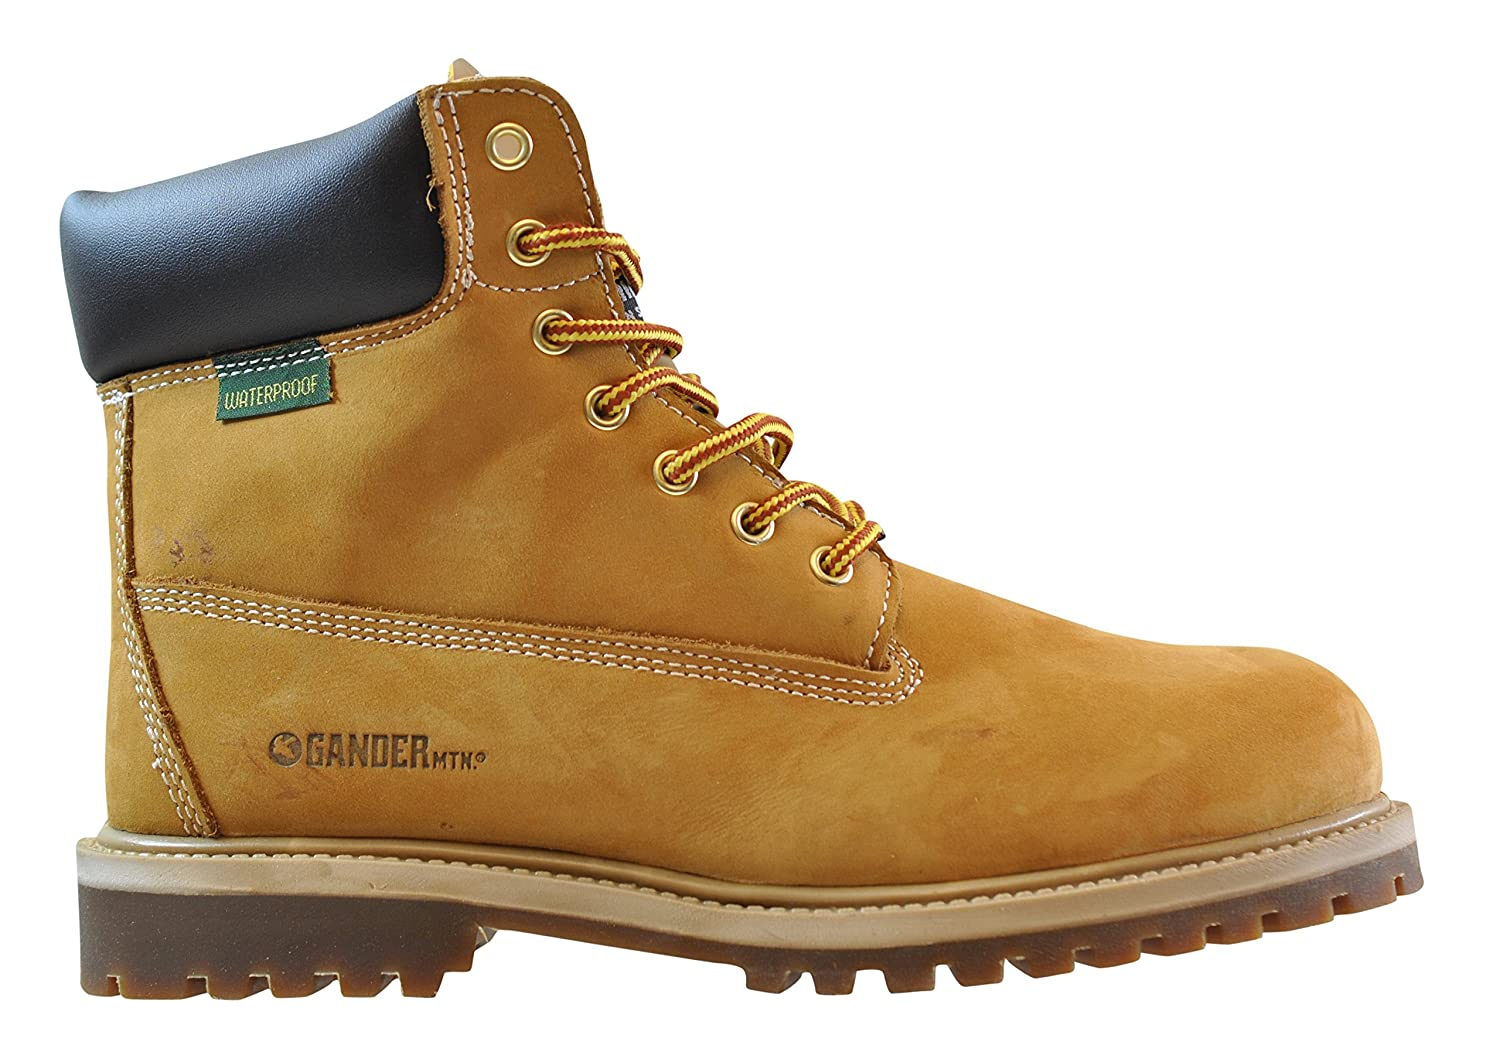 e9826347299 Gander Mountain Men's Nubuck Classic Construction Work Boots, Wheat,  Available in Medium and Wide Width